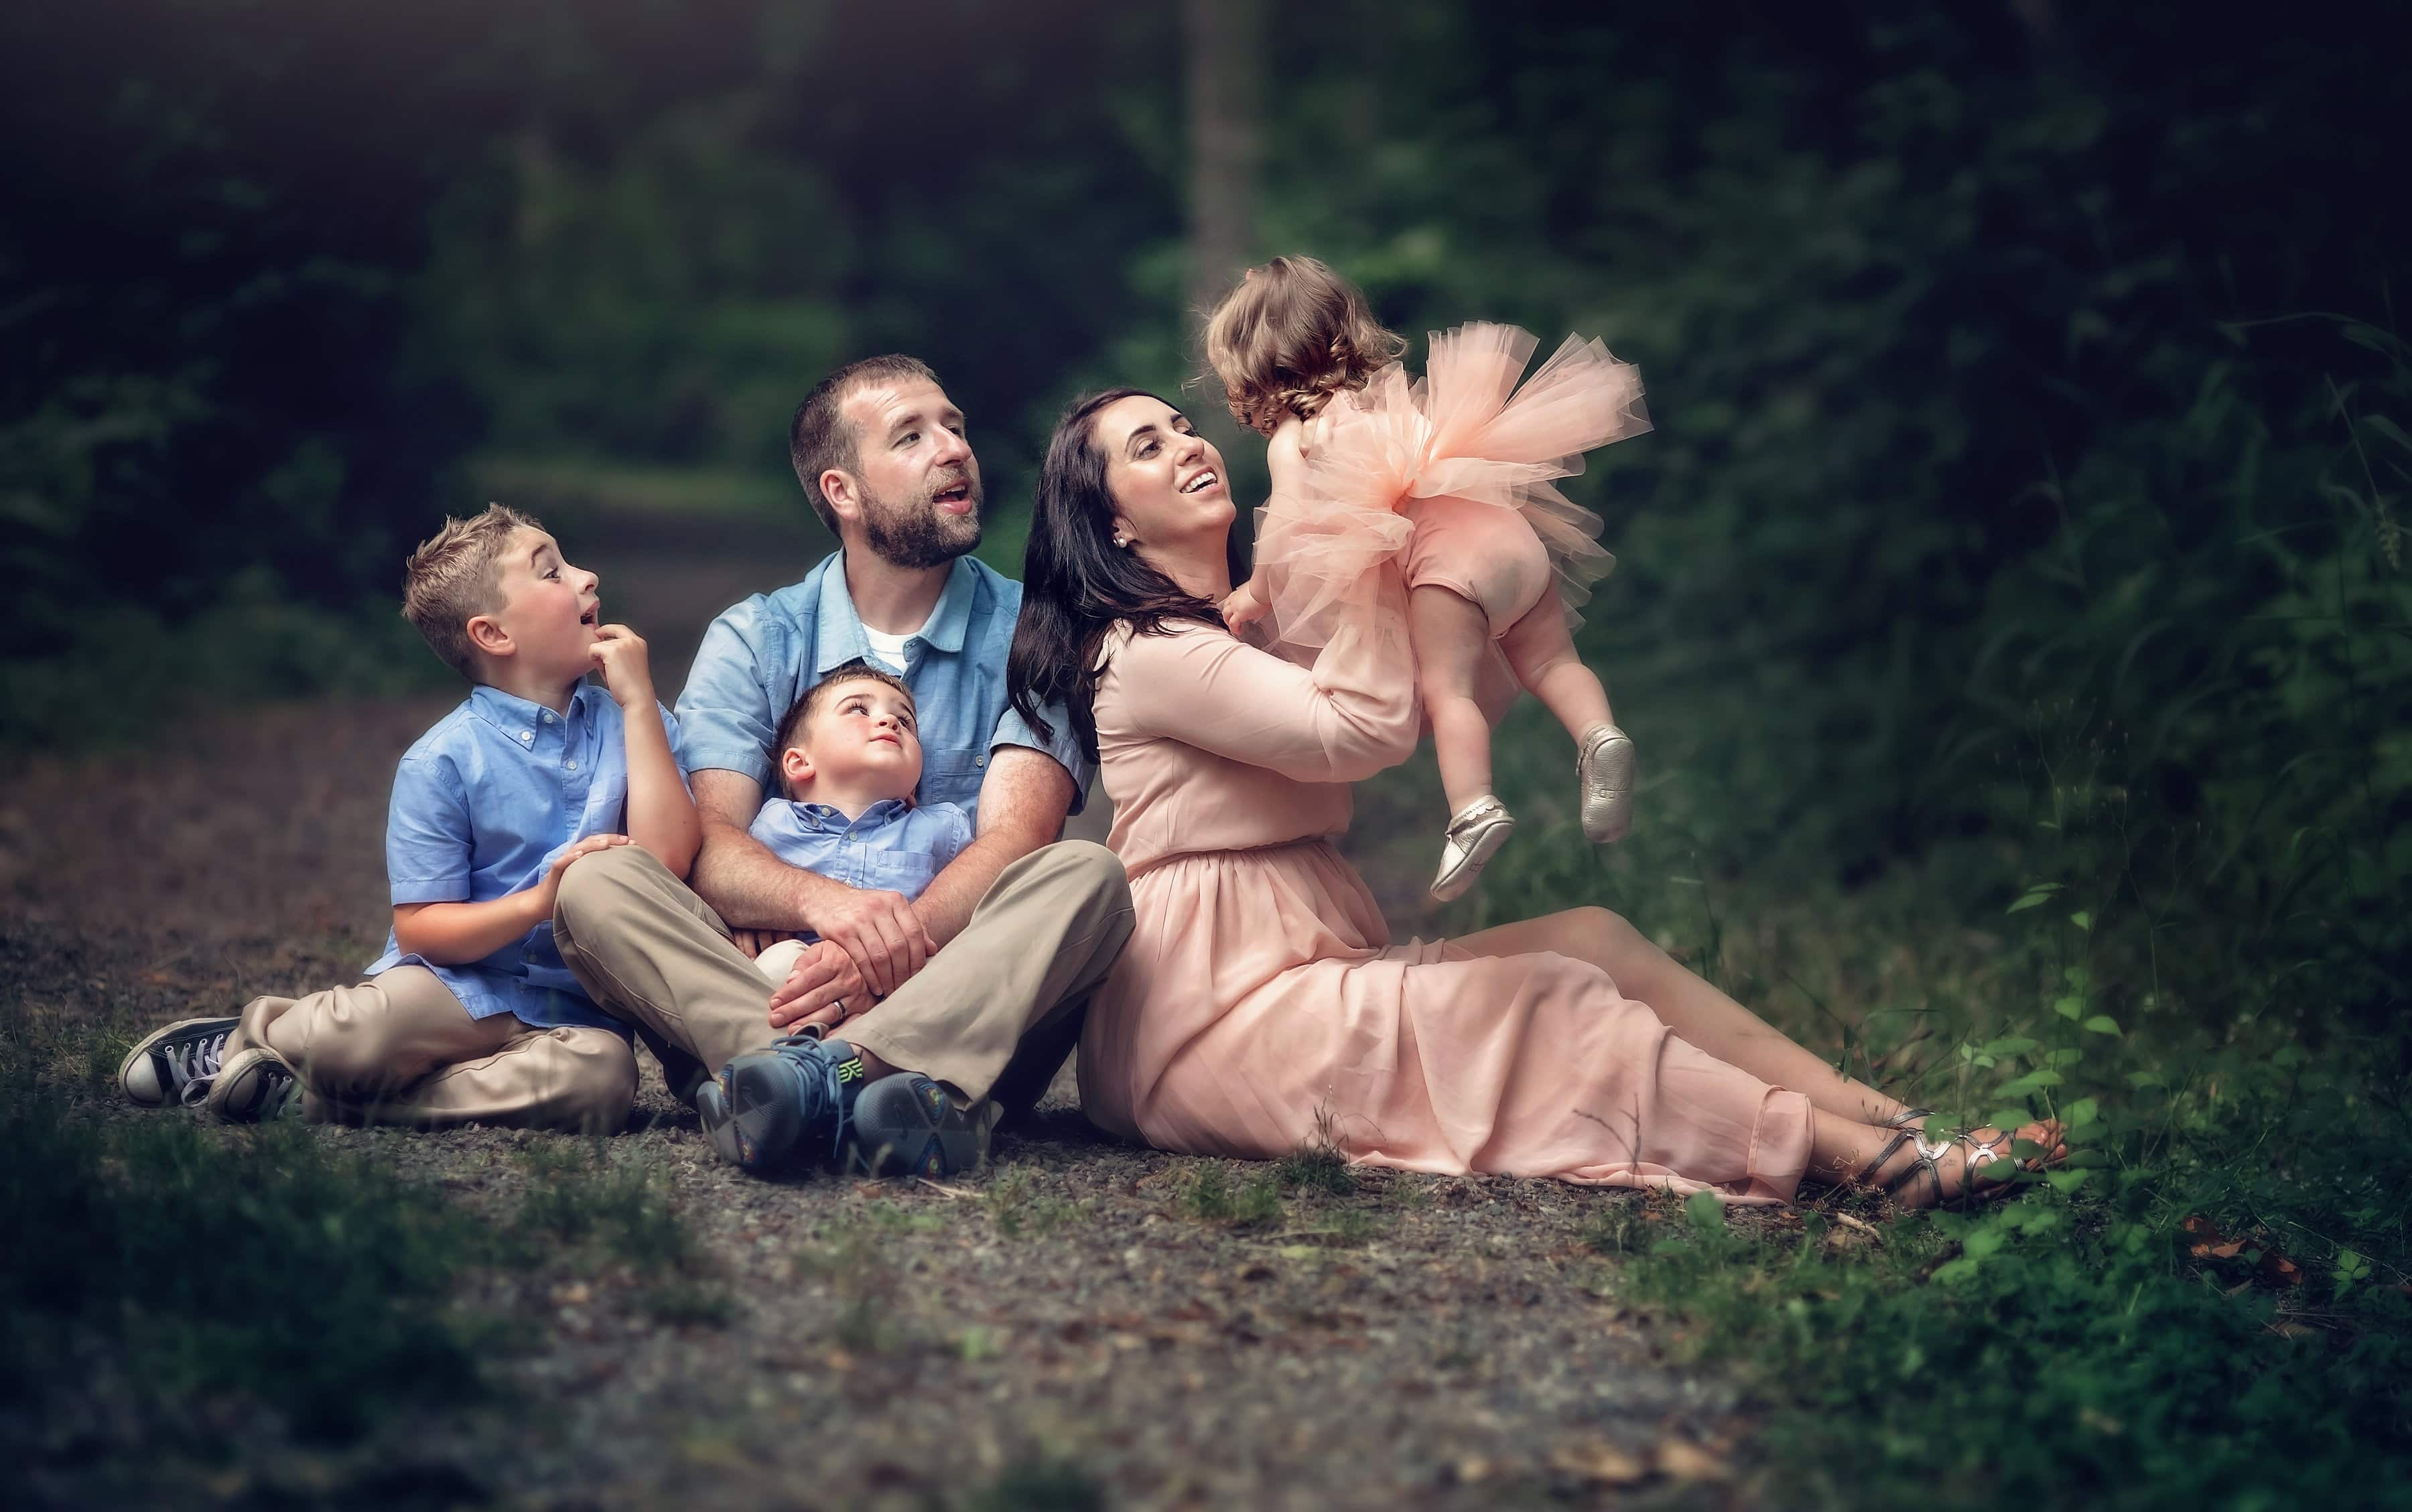 Photographing Life & Love | Ashley Grimes Photography | Ashley and her whole family